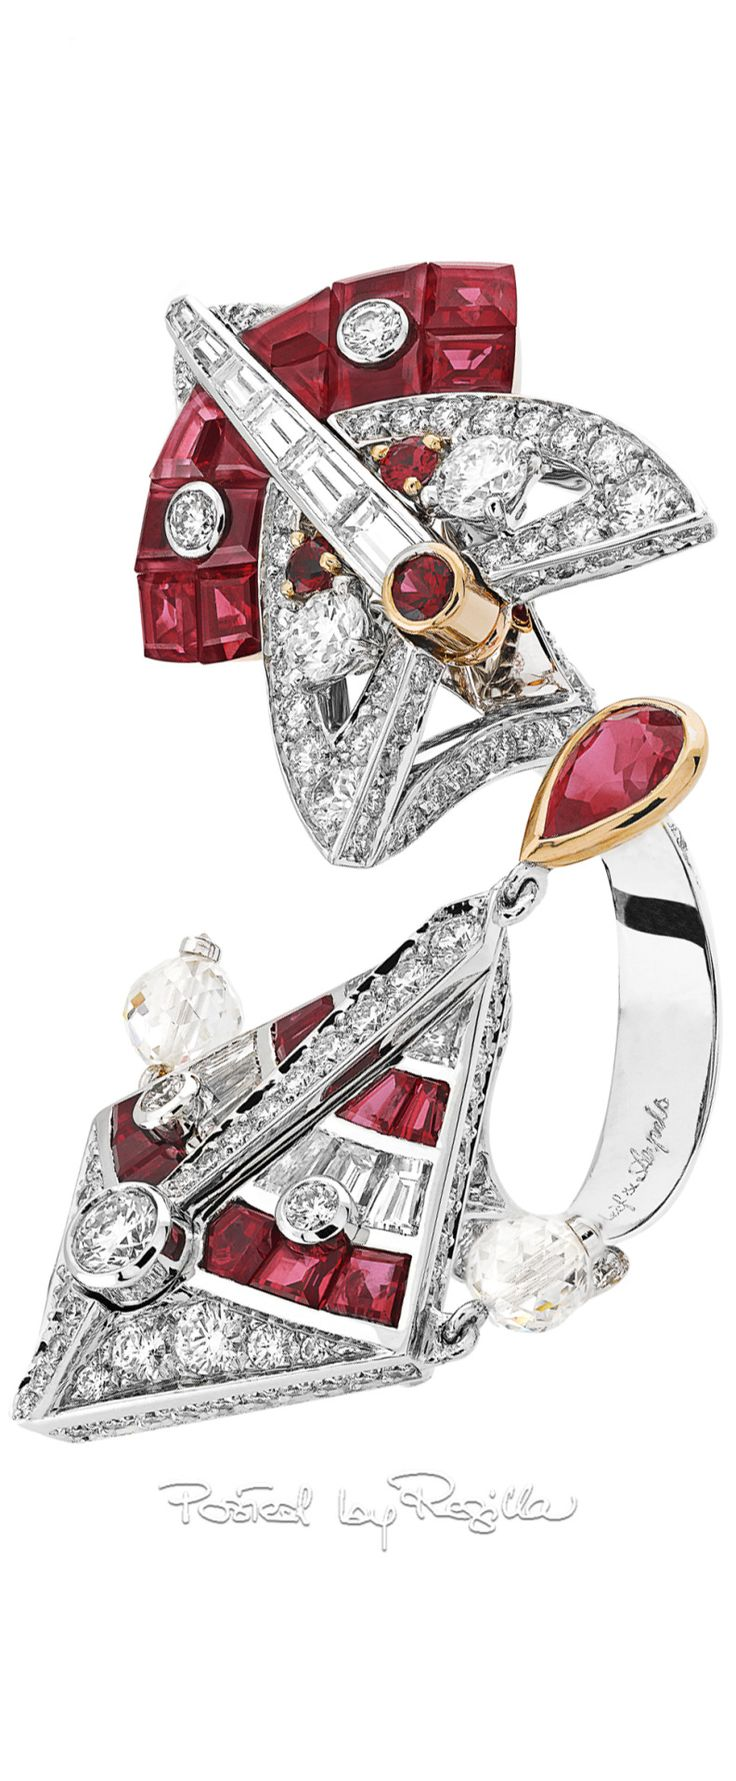 Van cleef amp arpels vca 18k yellow gold ruby cabochon amp diamond - Regilla Van Cleef Arpels Cerfs Volants Myst Rieux Between The Finger Ring